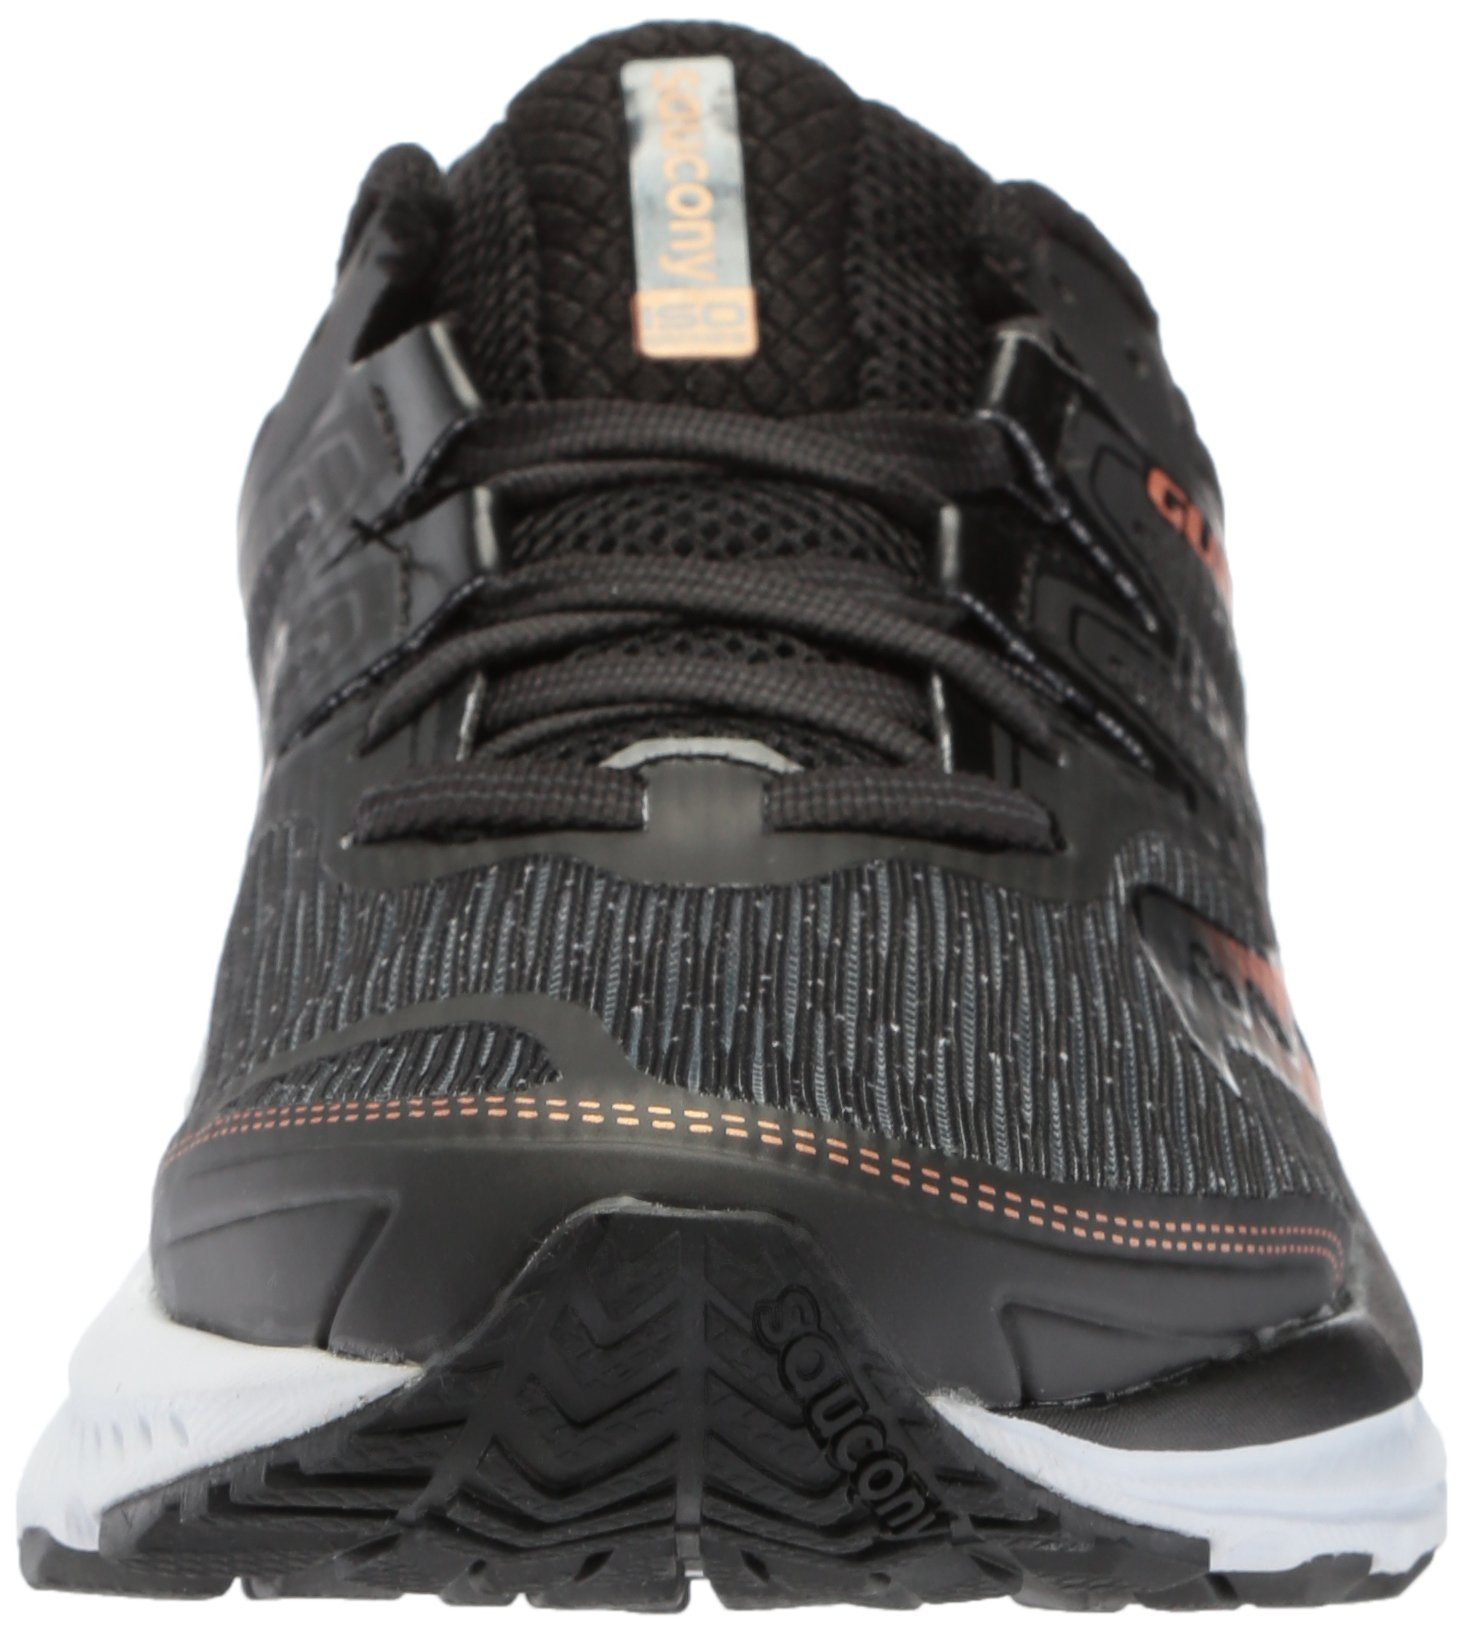 Saucony Women's Guide Iso Running Shoe, Black/Denim, 10.5 Medium US by Saucony (Image #4)